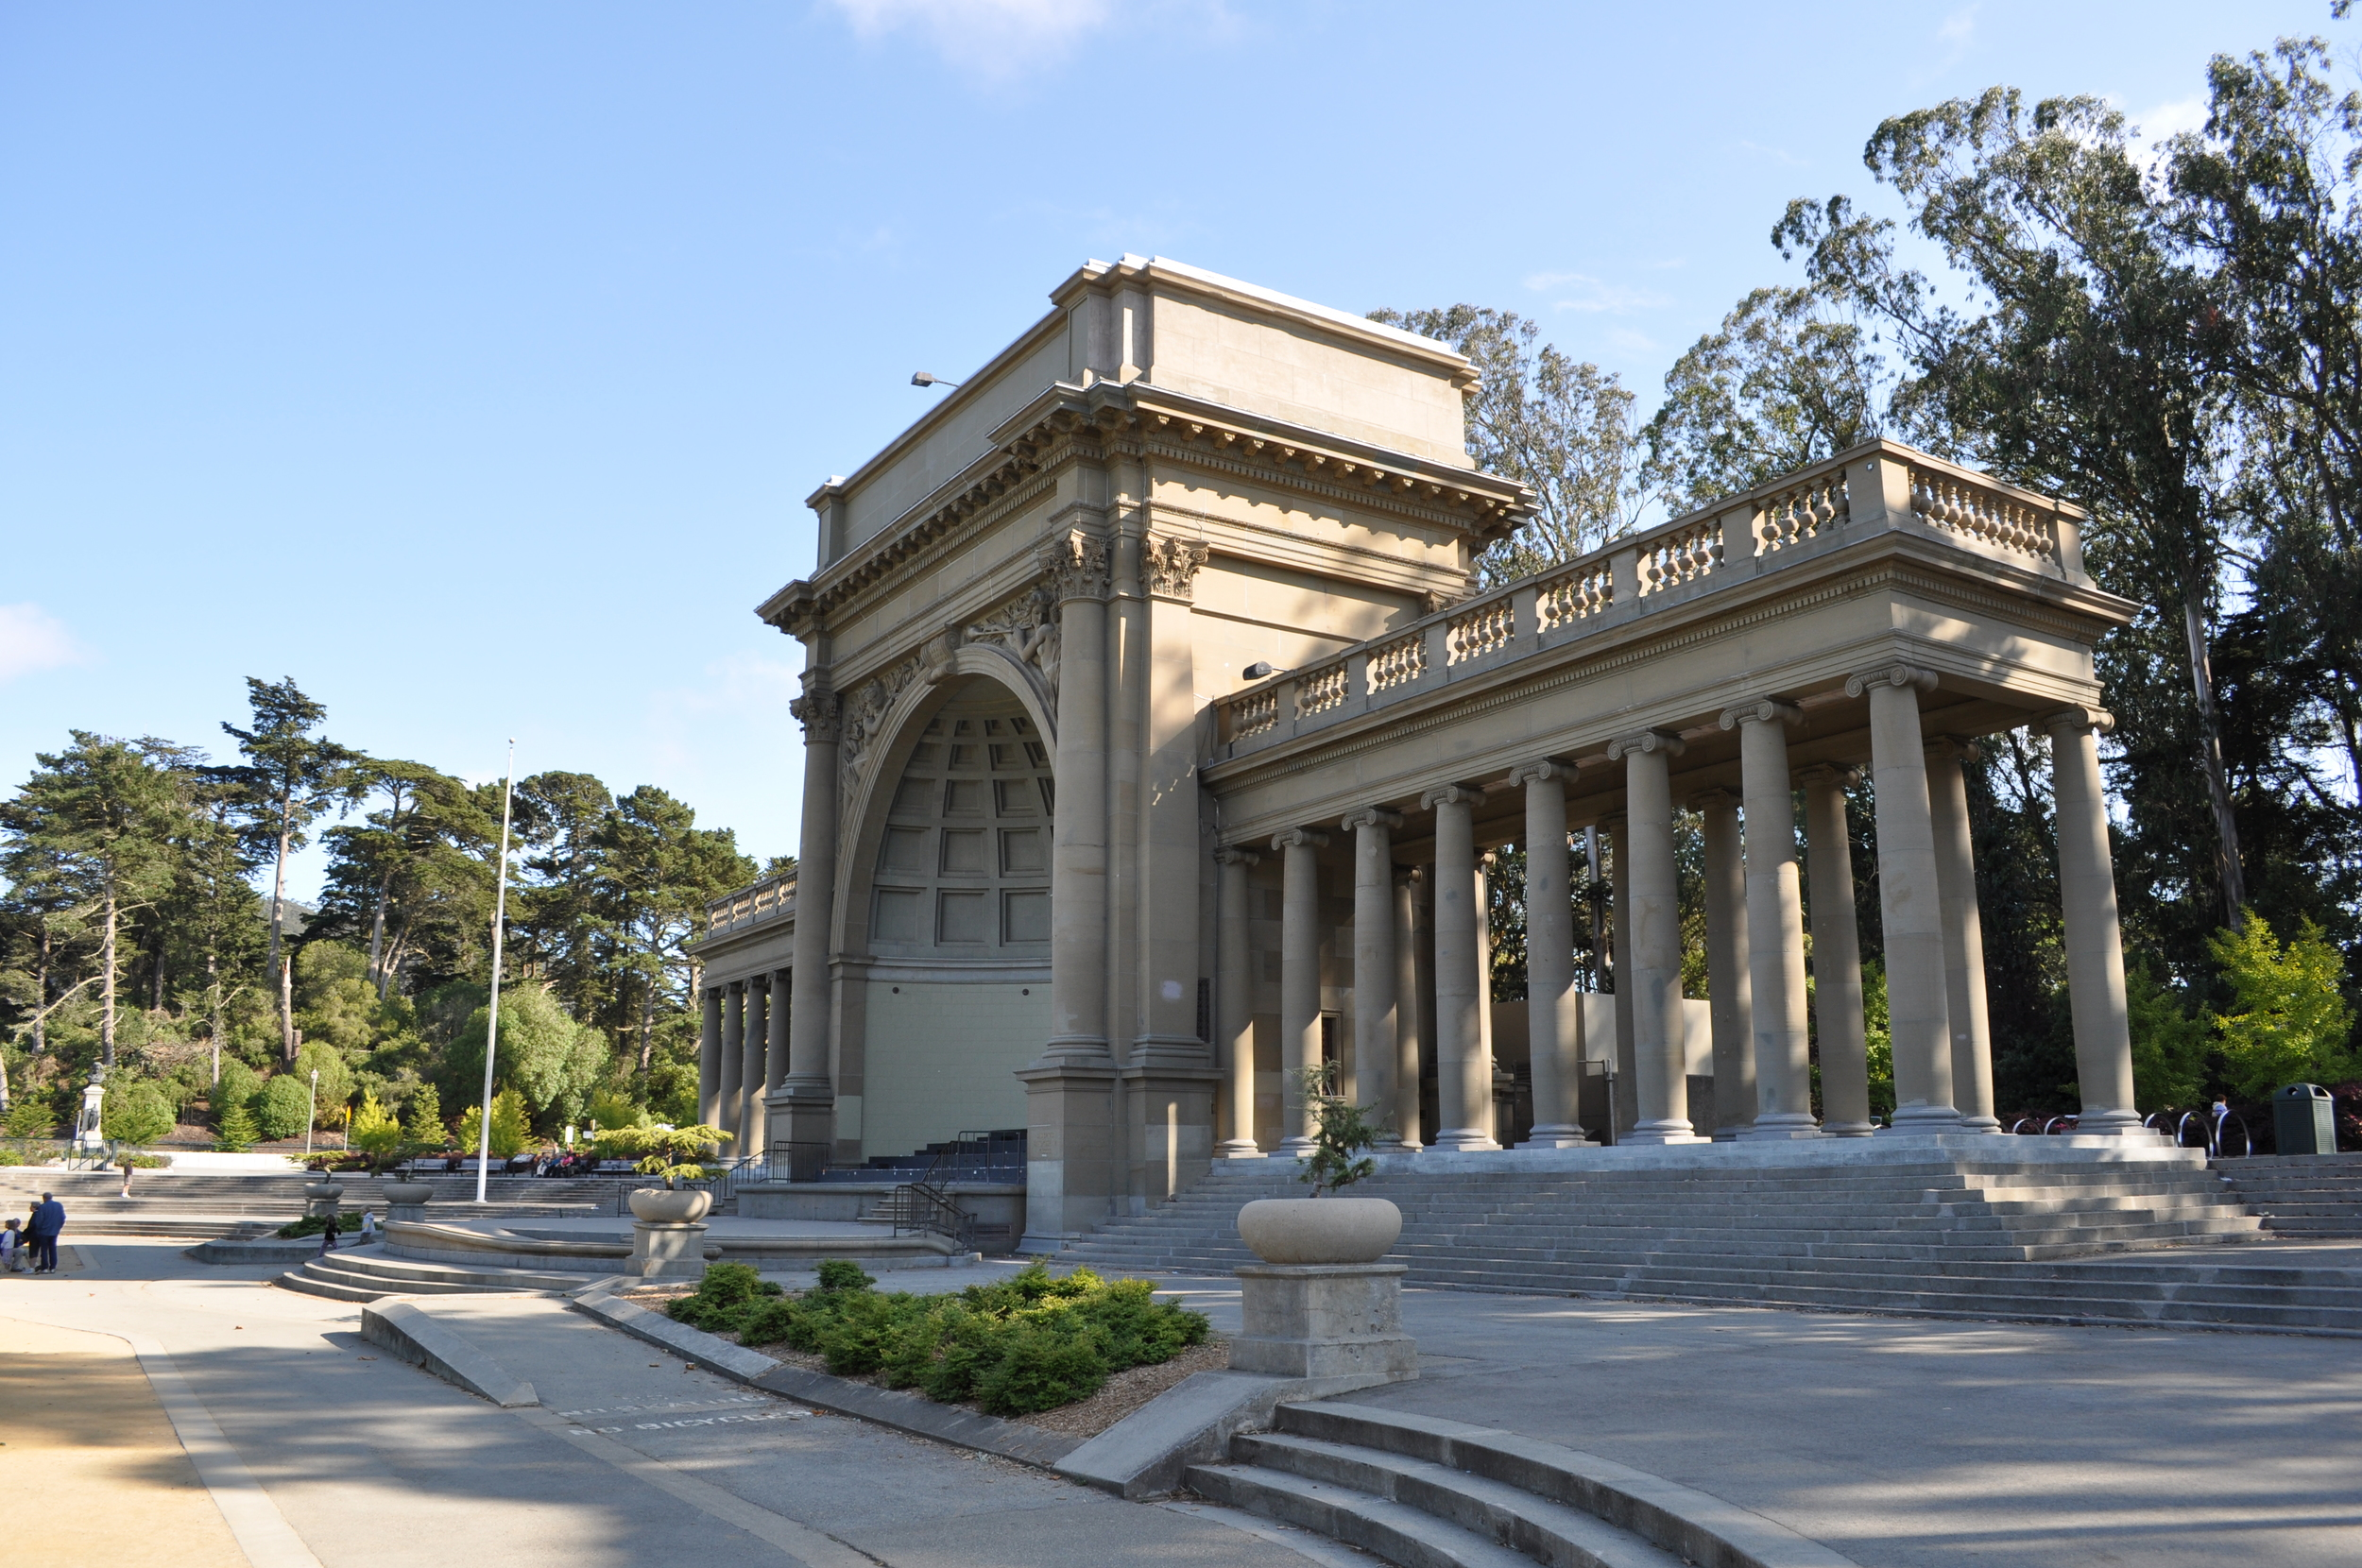 Golden Gate Park offers a myriad of treasures, from world-renowned museums to miles of hiking, biking and walking trails.